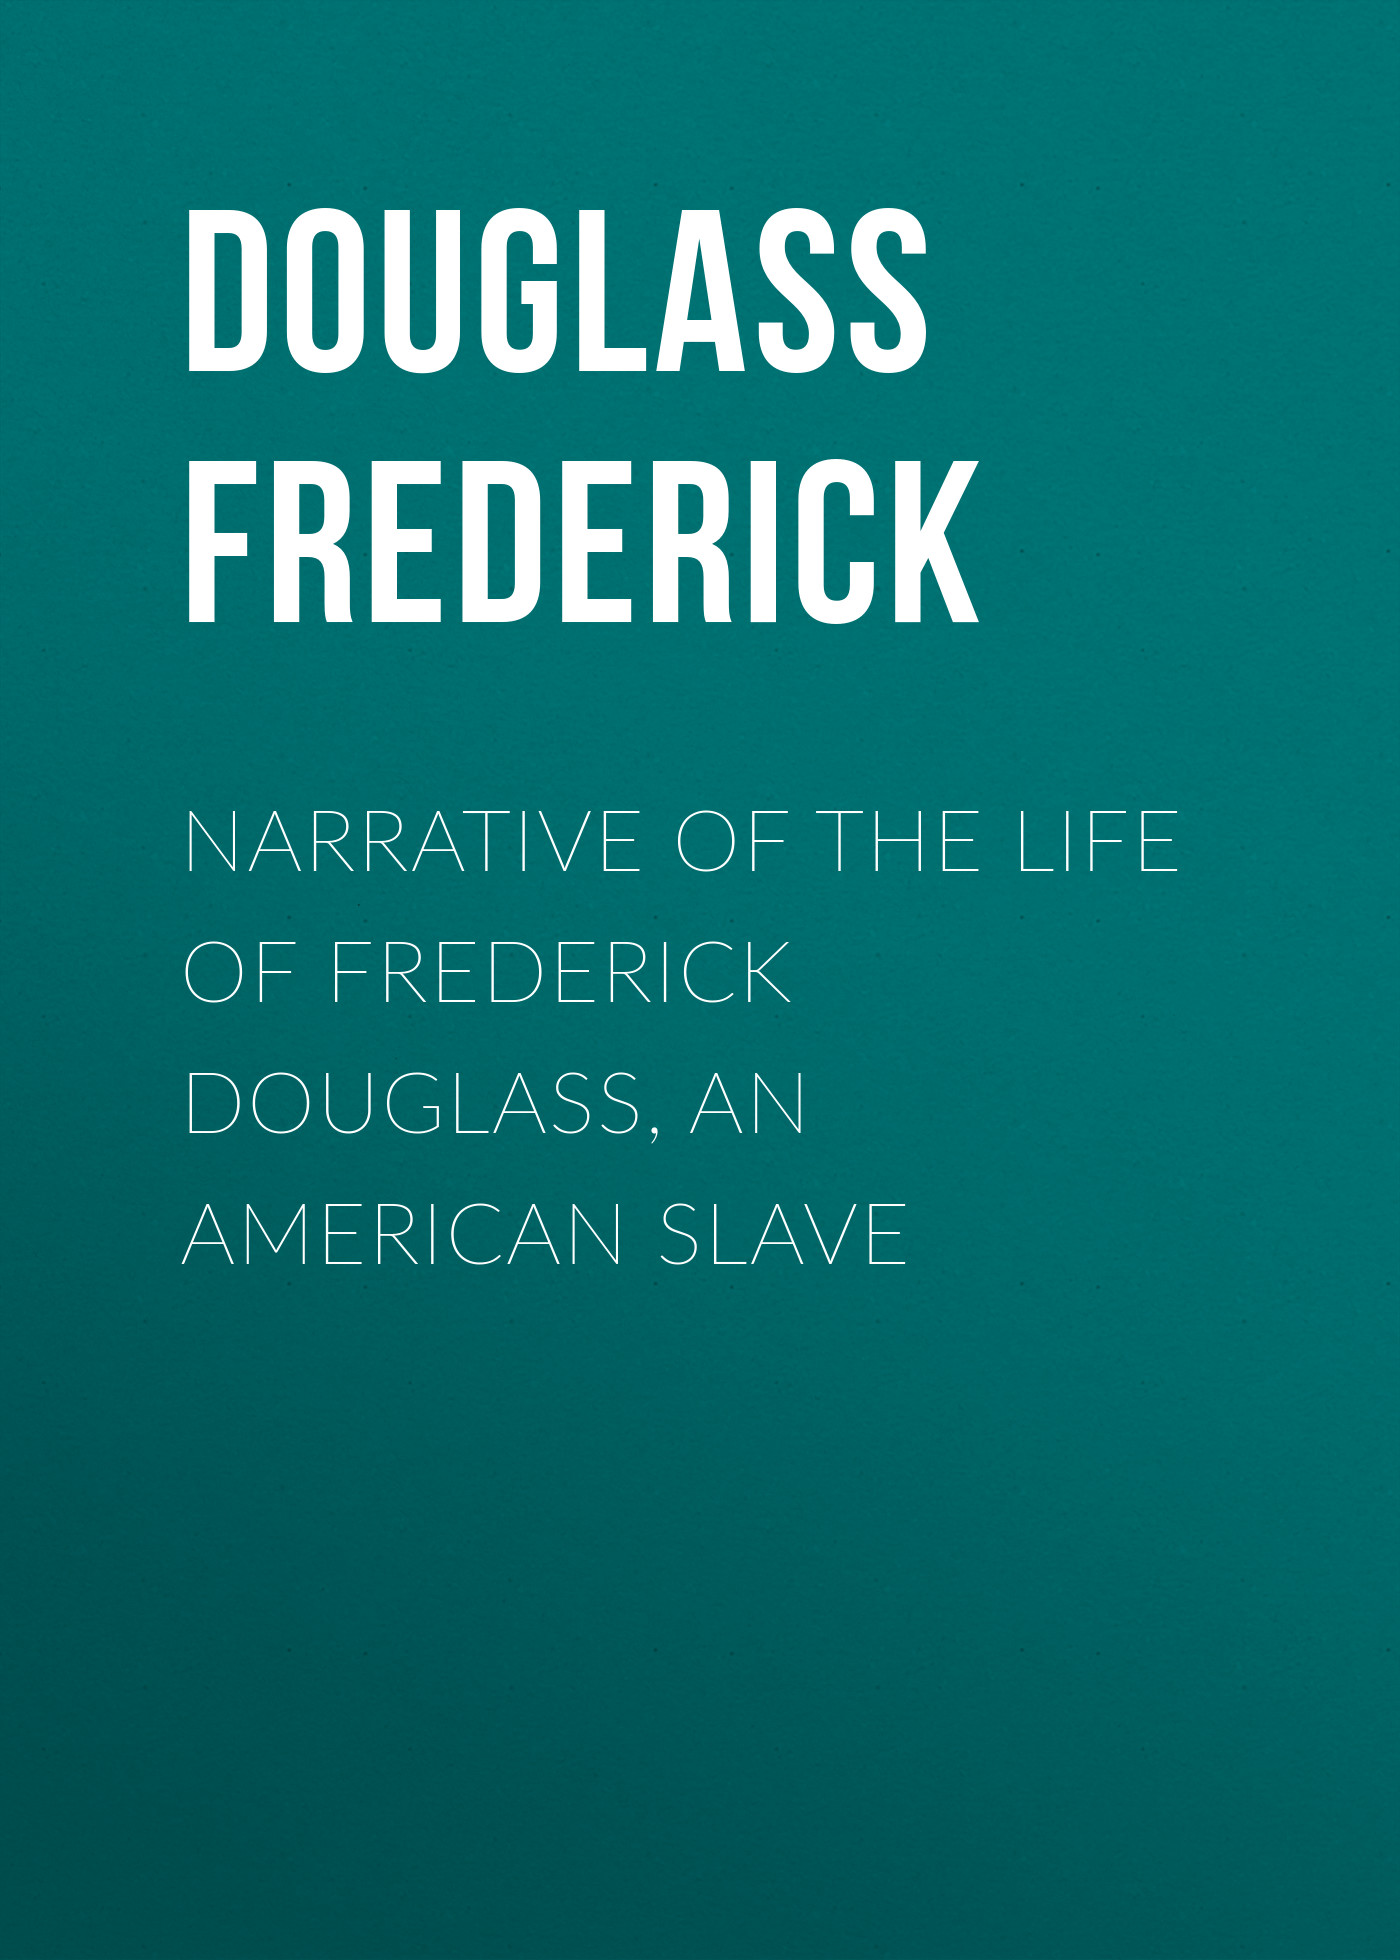 Douglass Frederick Narrative of the Life of Frederick Douglass, an American Slave льняная юбка хонсу